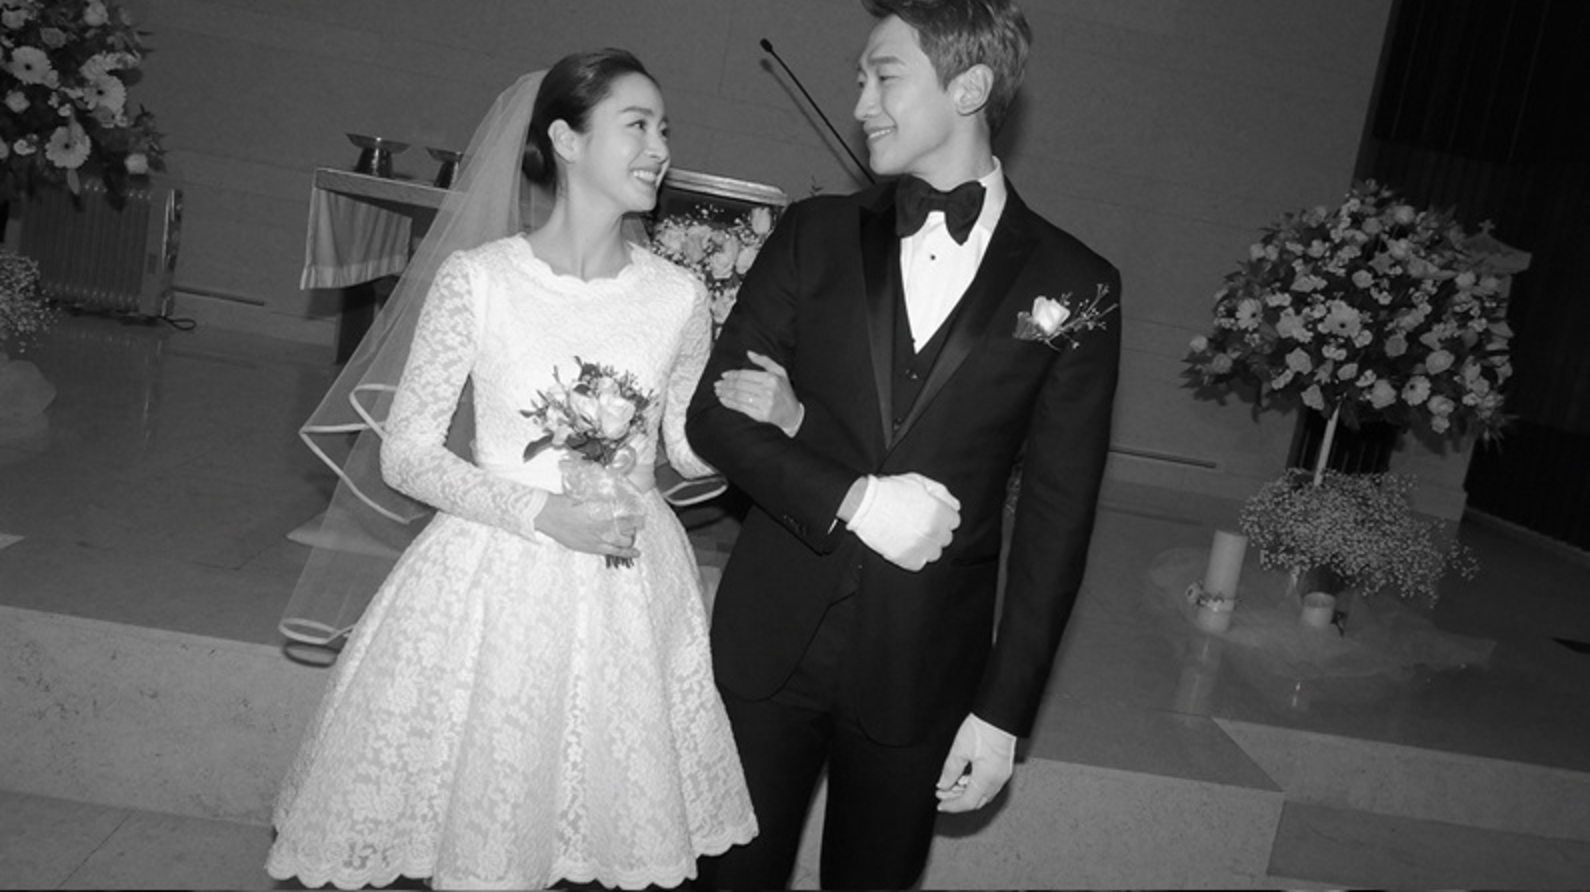 Kim Tae Hee Posts Hand-Written Letter After Marrying Rain In Private Wedding Ceremony